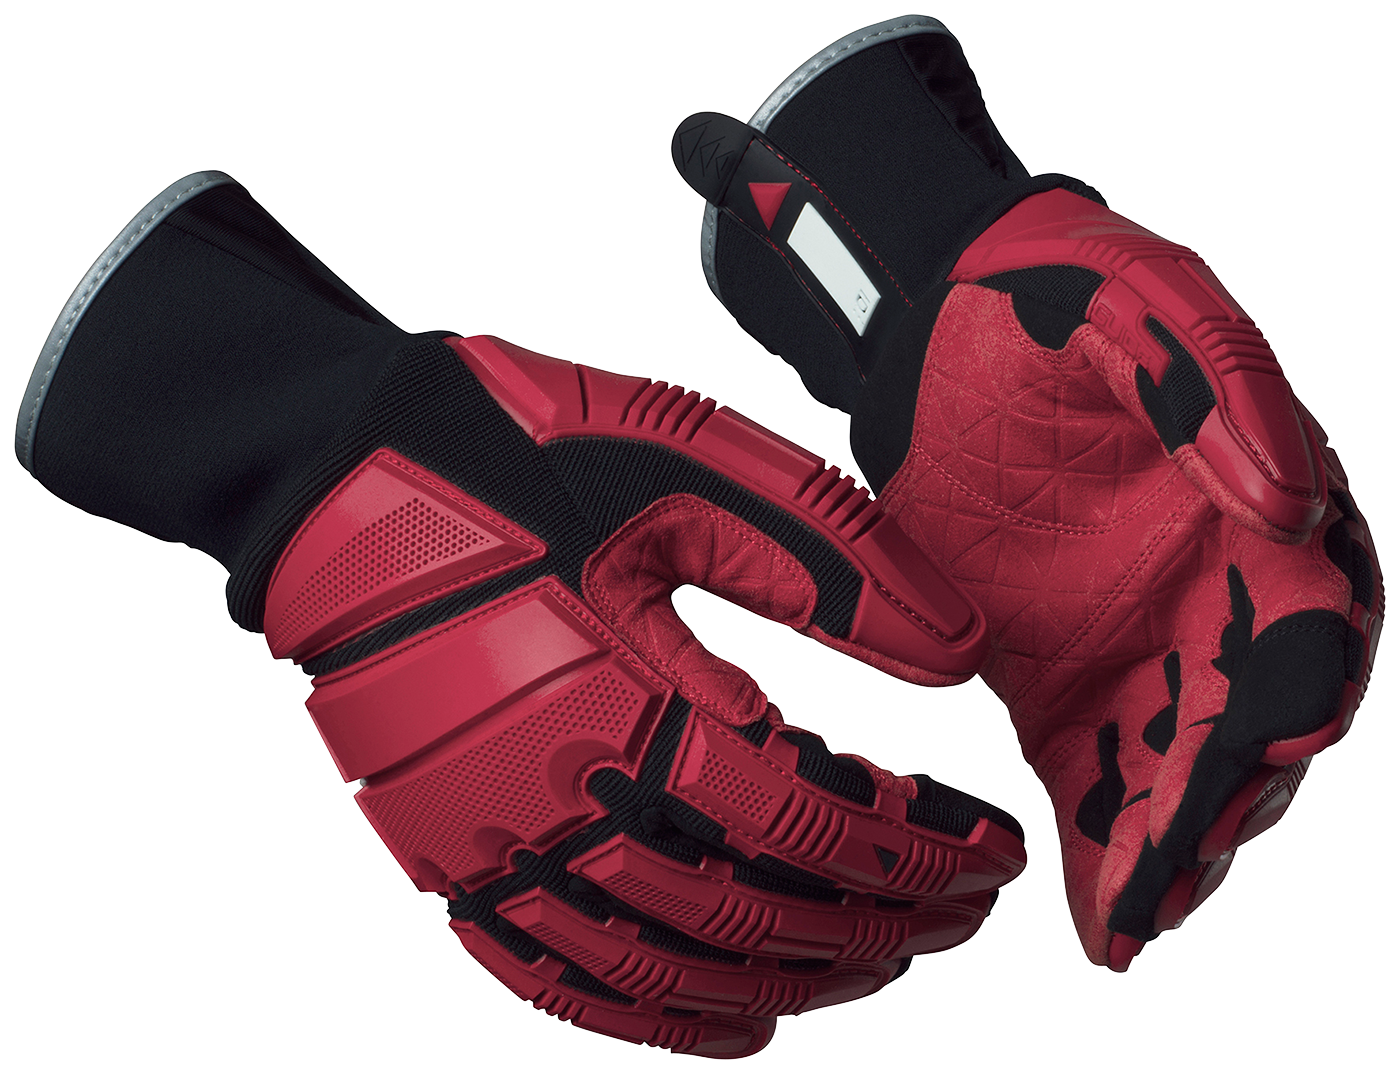 Work glove GUIDE 4503